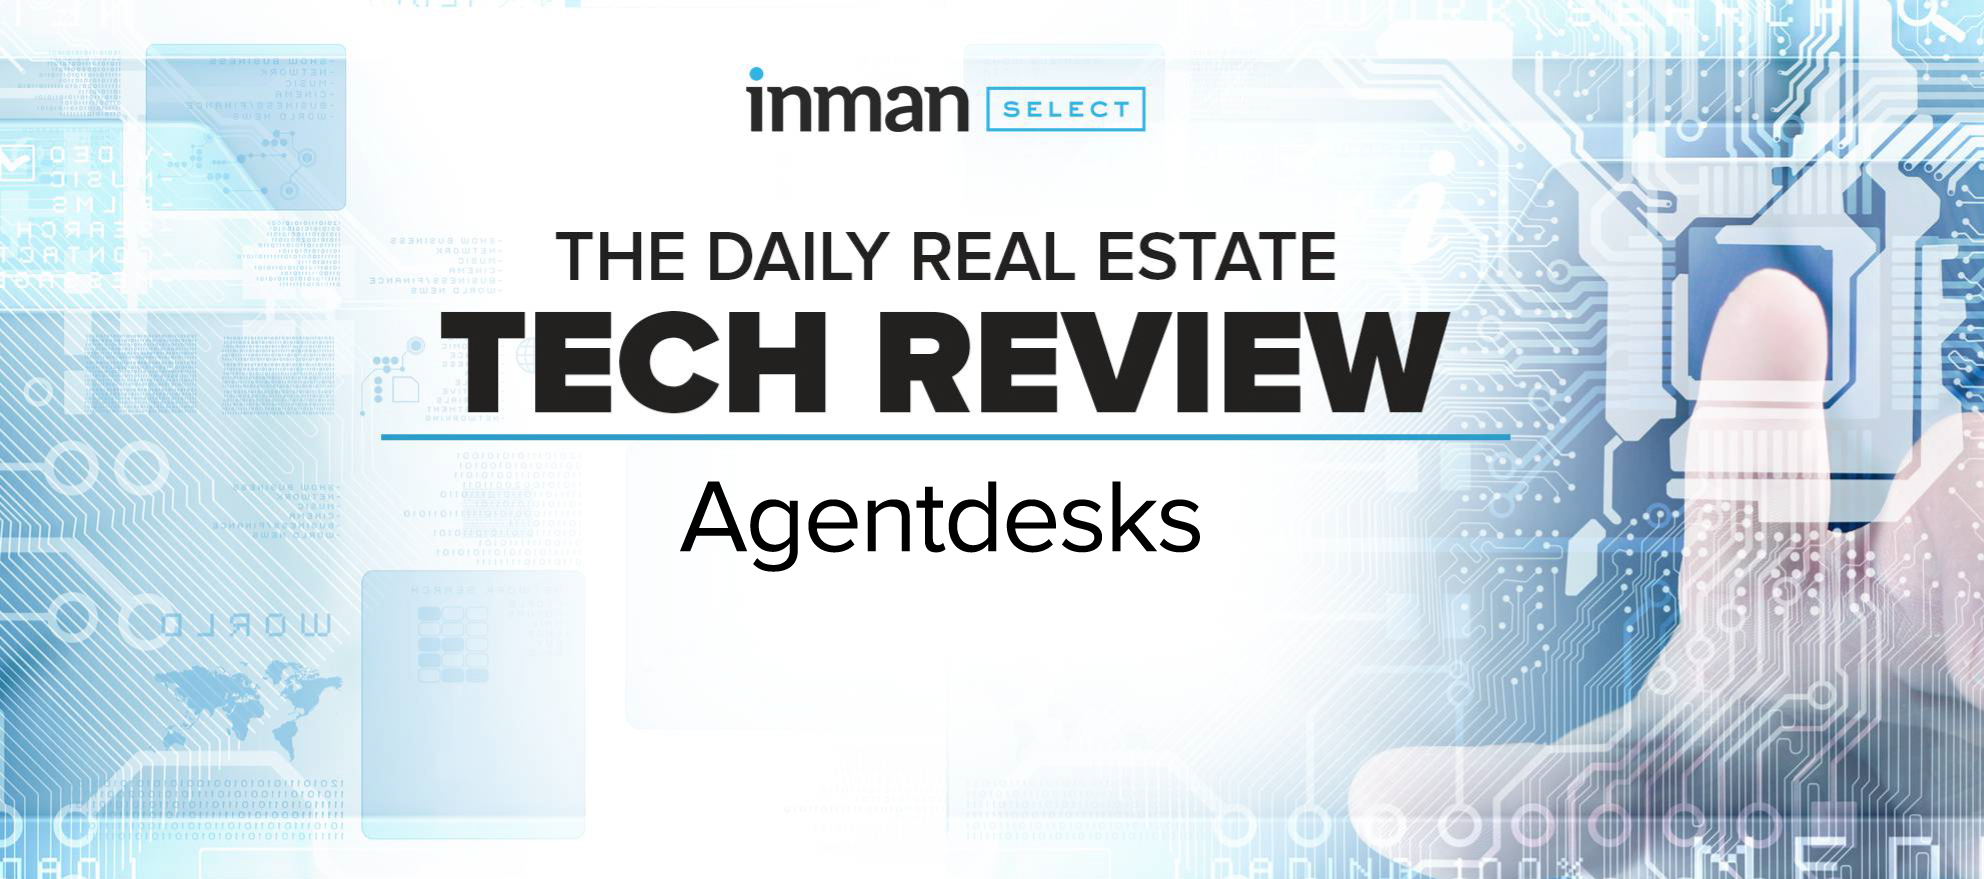 Agentdesks mobilizes, simplifies the CRM